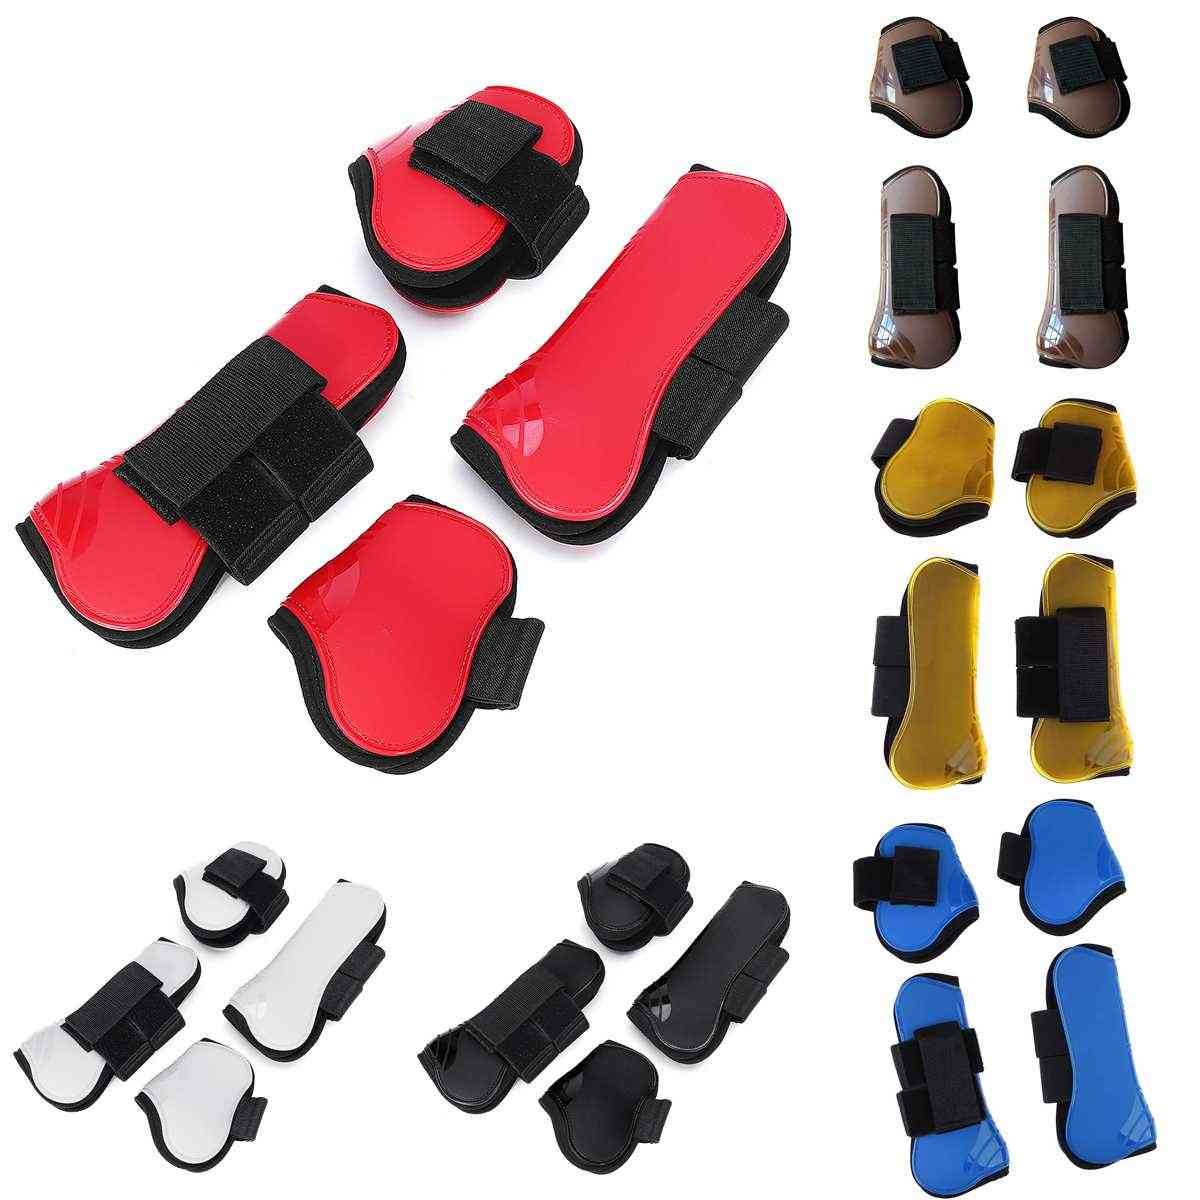 Horse Tendon And Fetlock Boots Equestrian, Sports Jumping Leg Protection